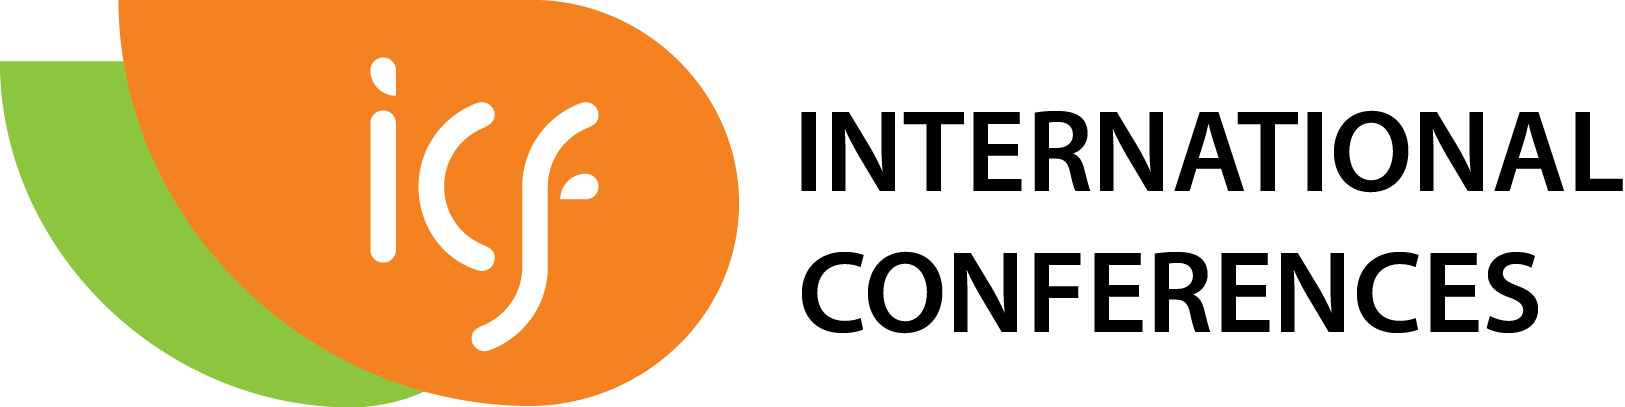 ICF - International Conferences